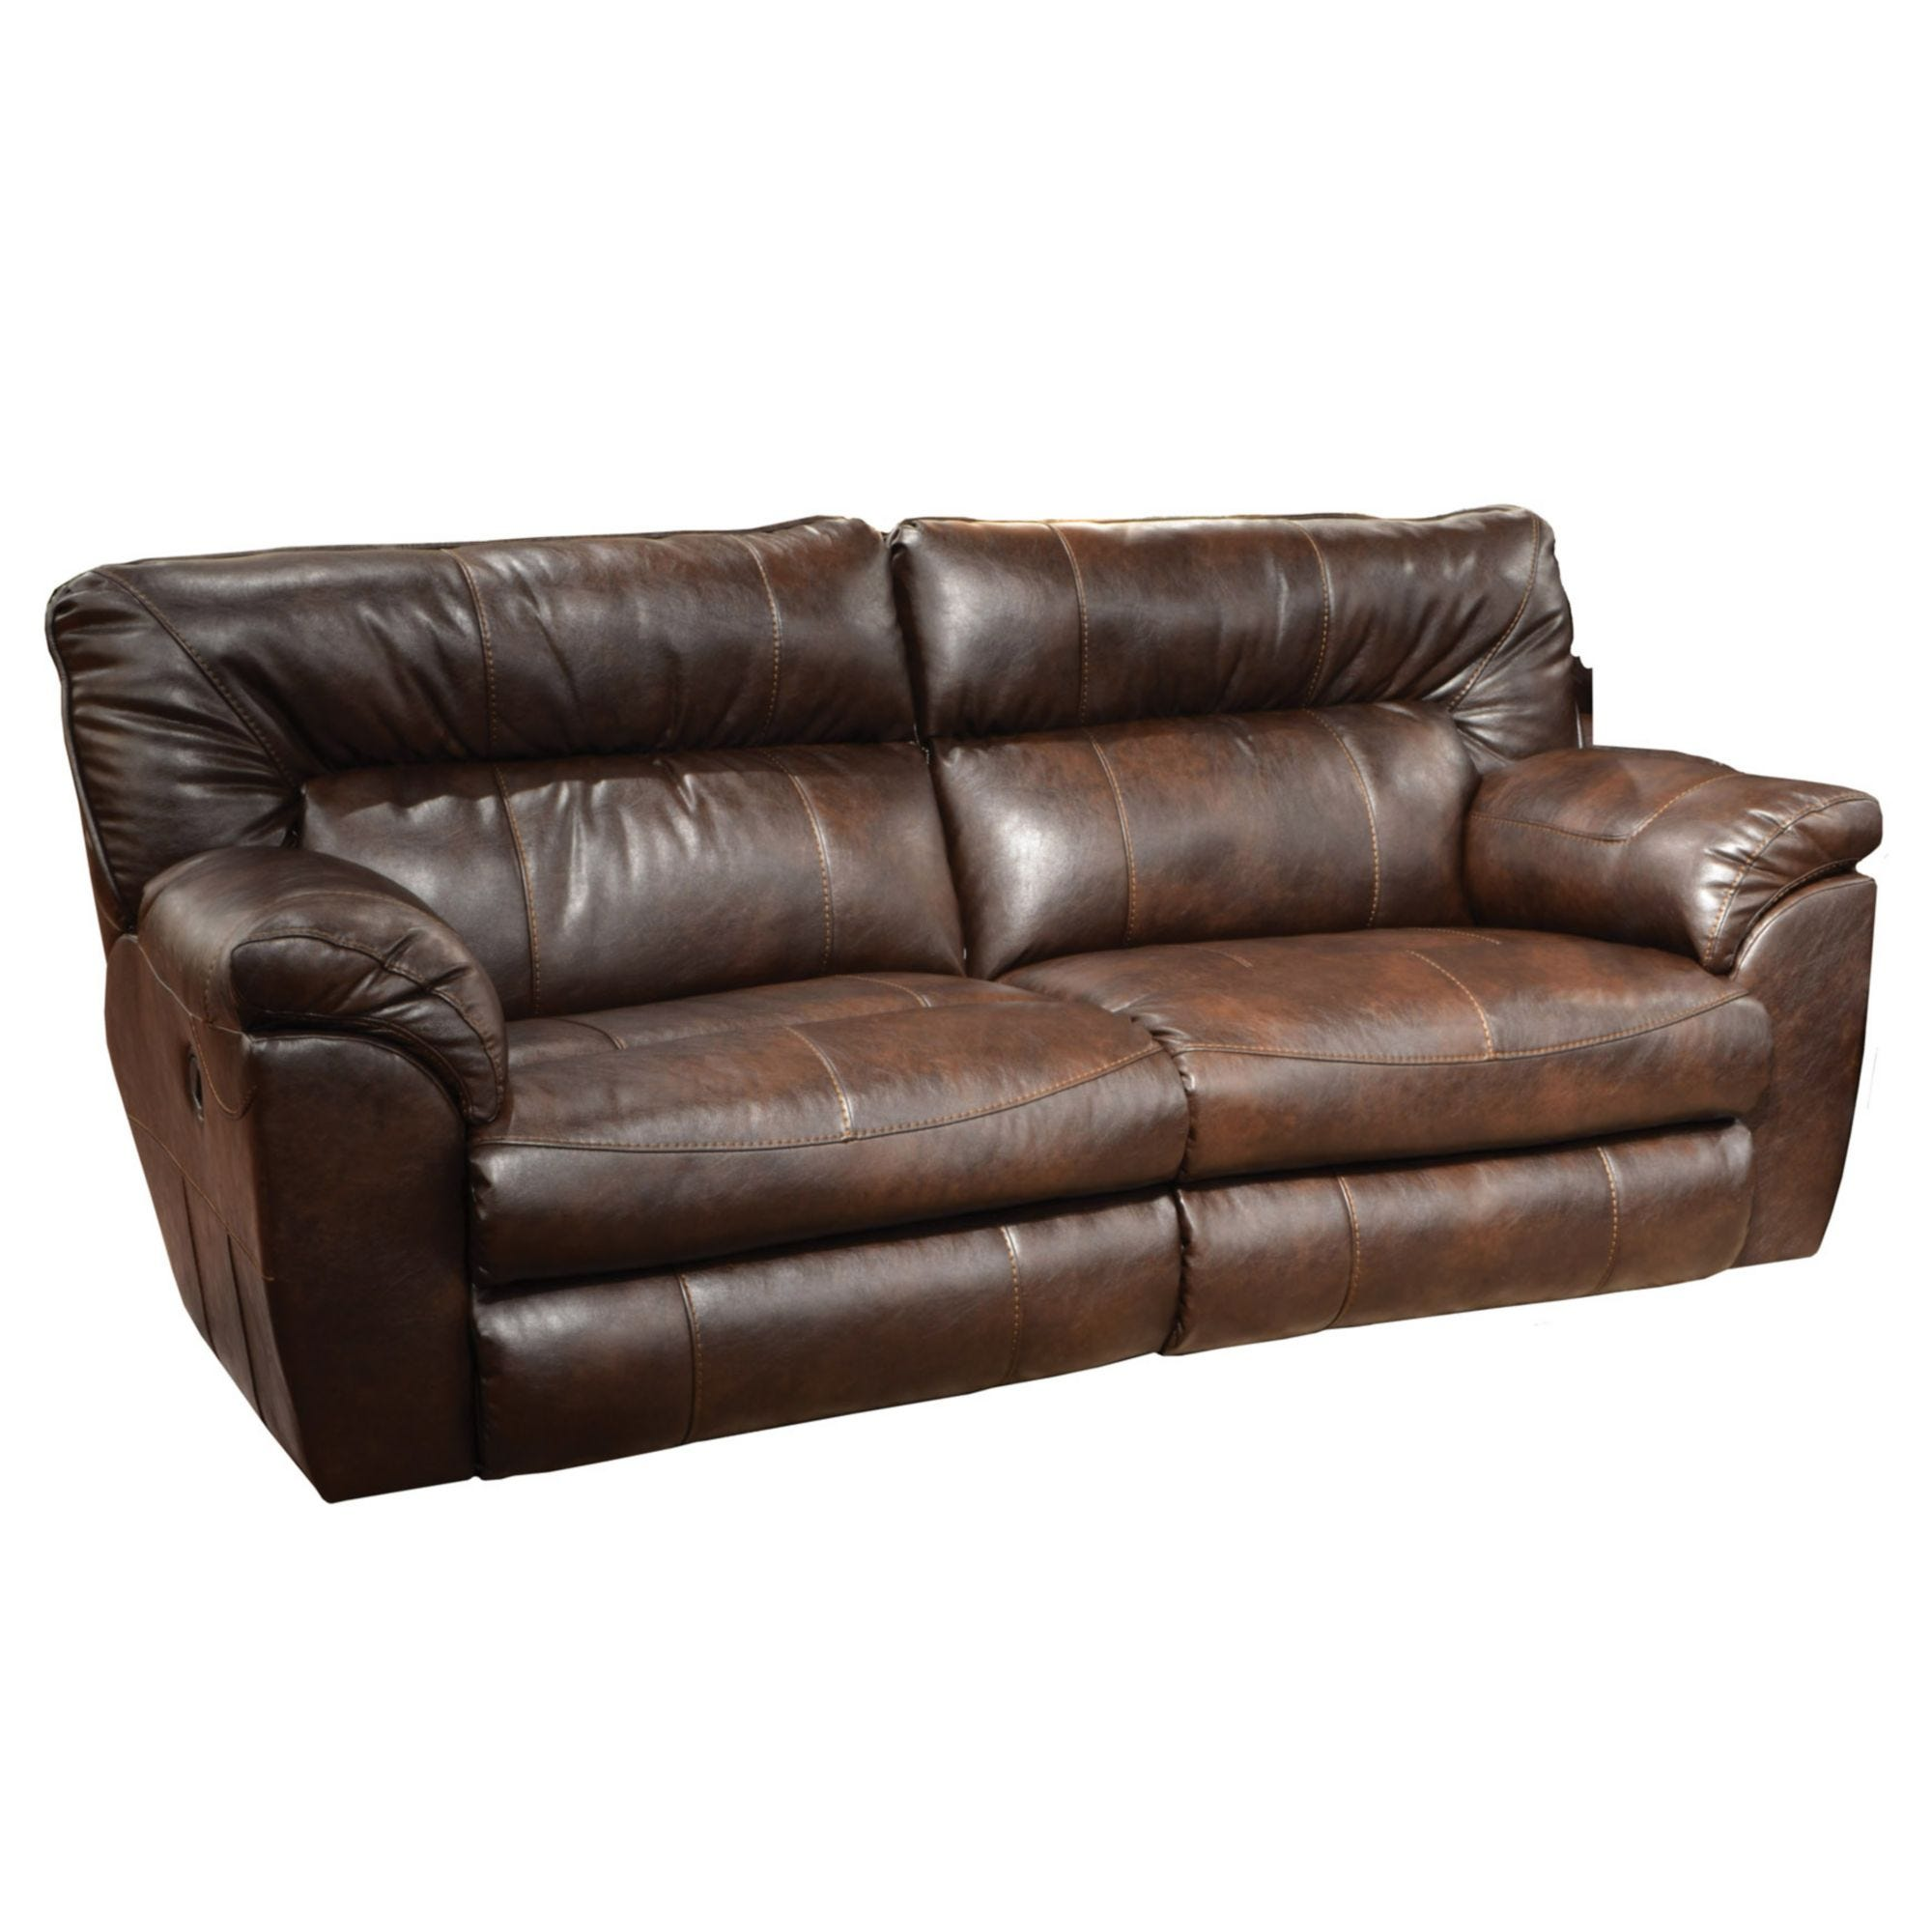 Nolan Reclining Sofa Fred Meyer Review Home Co